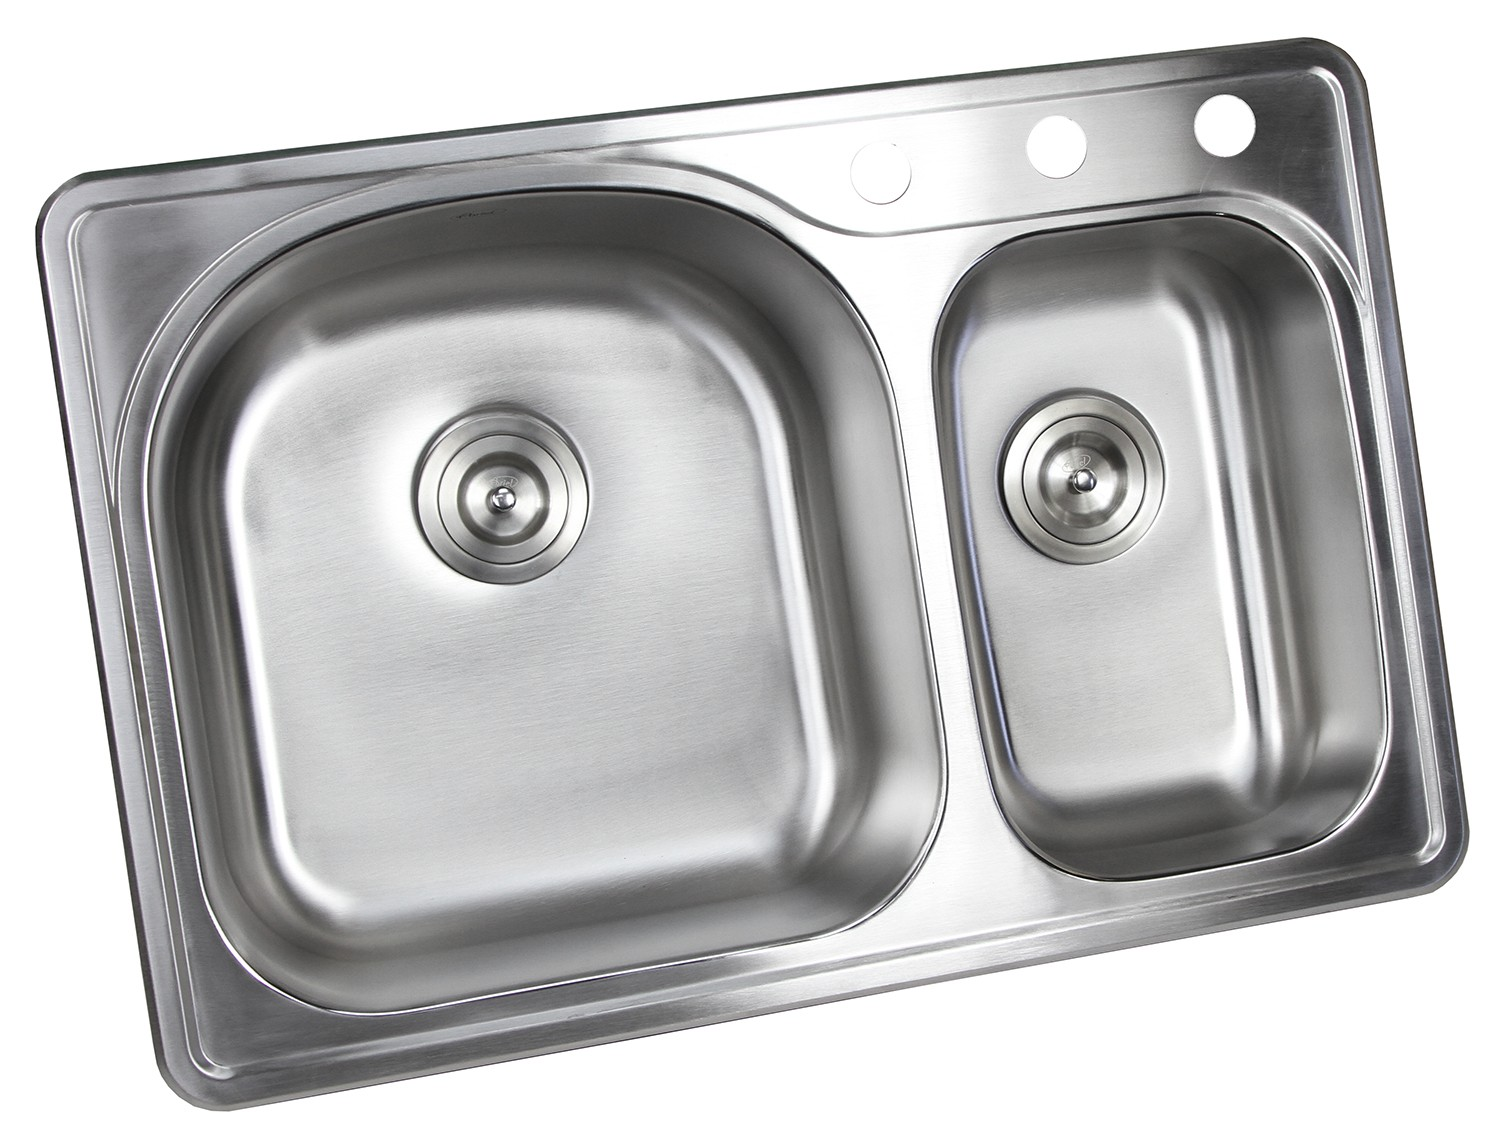 33 inch top mount drop in stainless steel 70 30 double bowl kitchen sink with 3 faucet holes 18 gauge